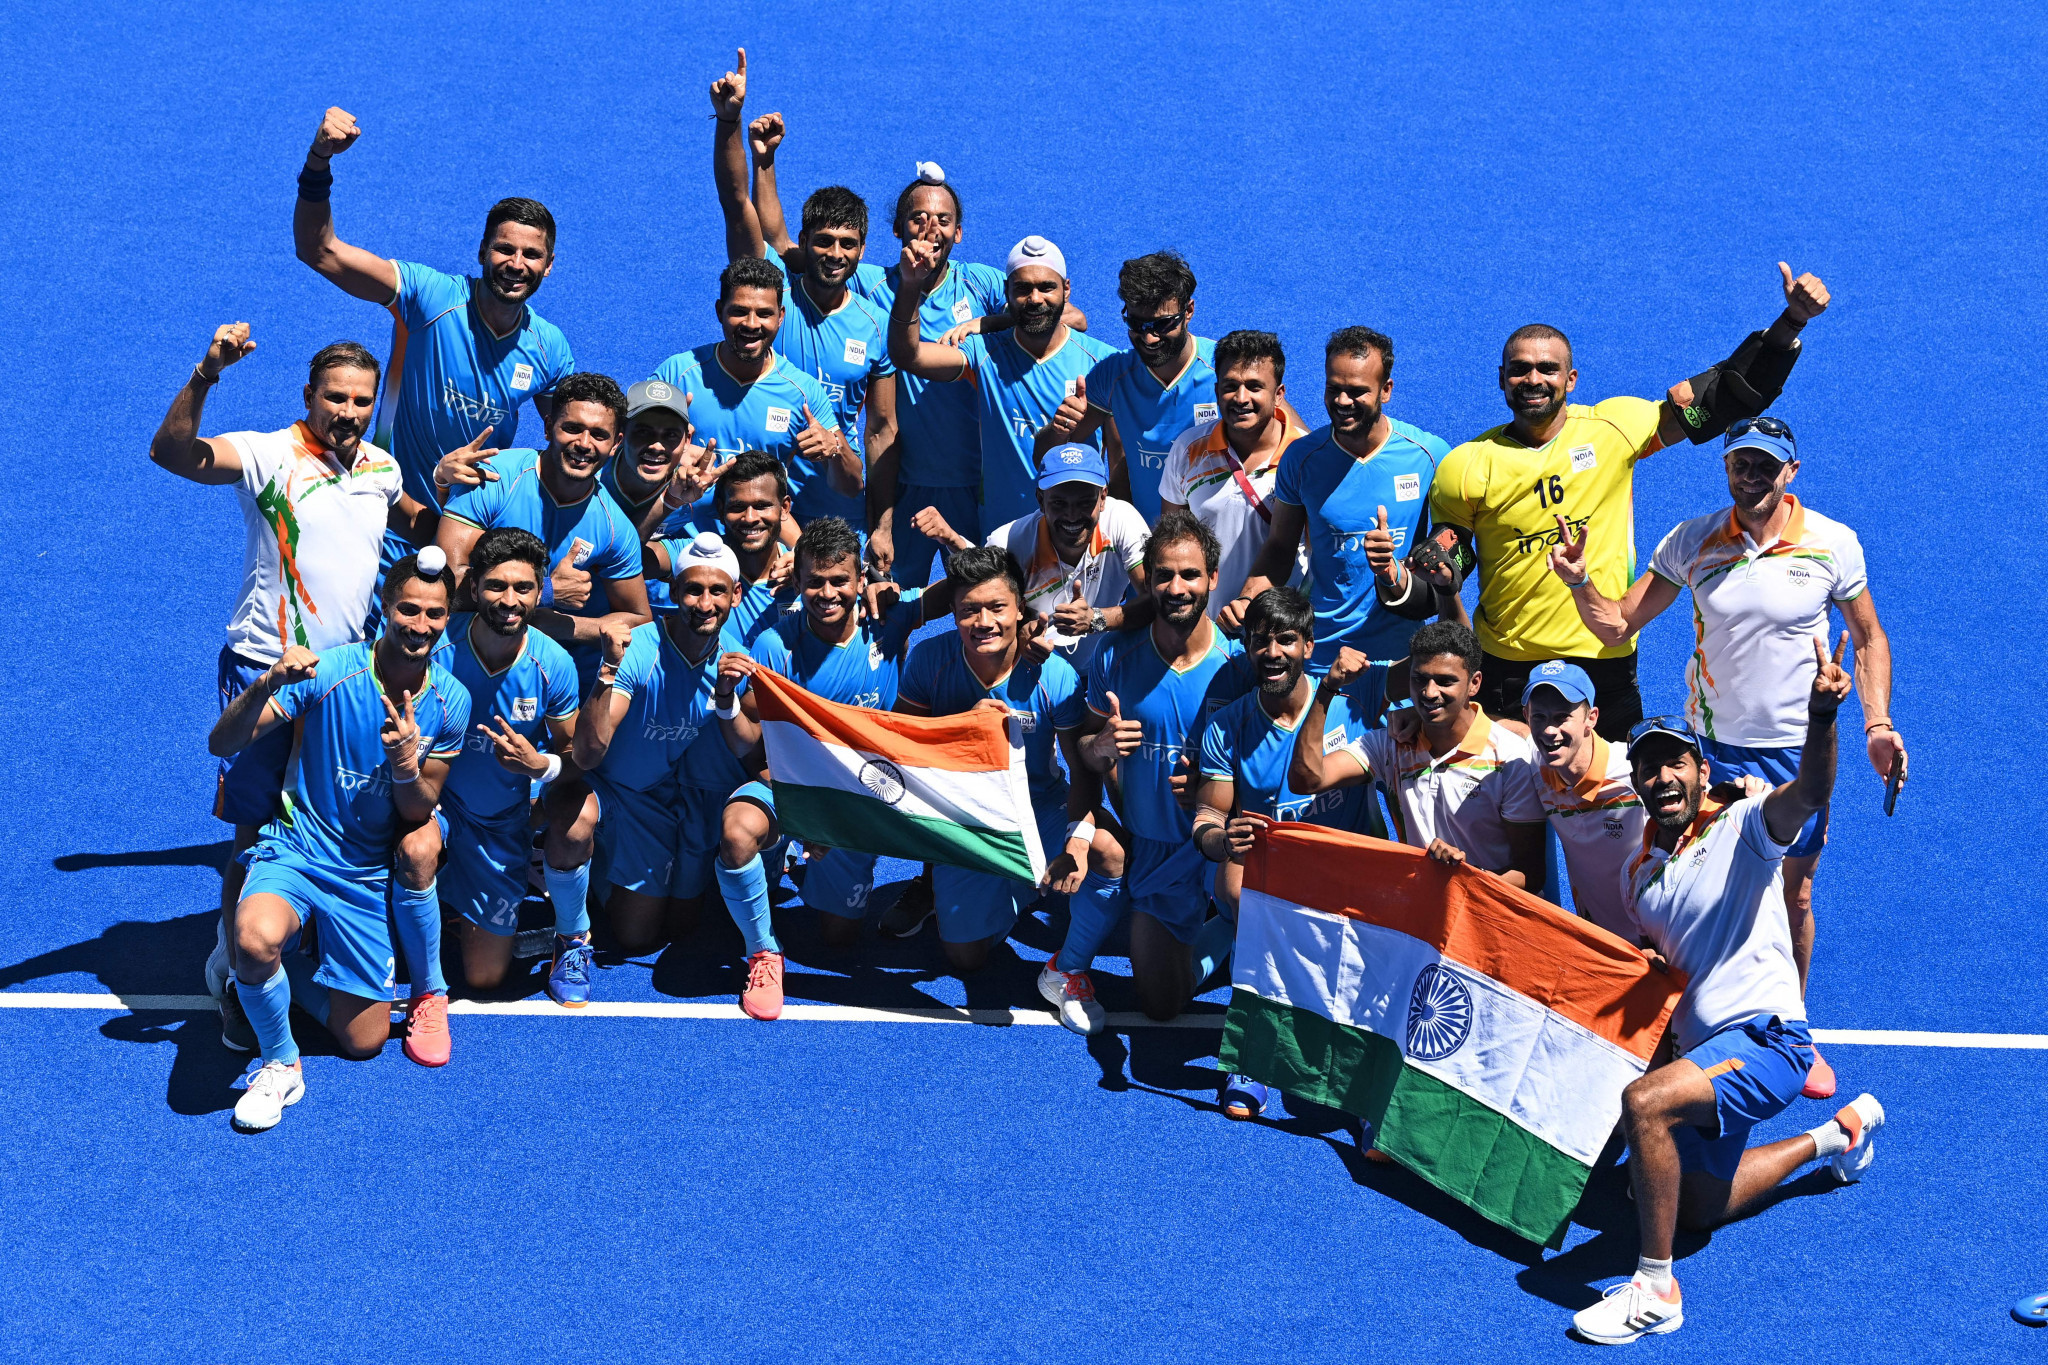 India men's hockey team ended a 41-year medal drought with their bronze medal at Tokyo 2020 ©Getty Images